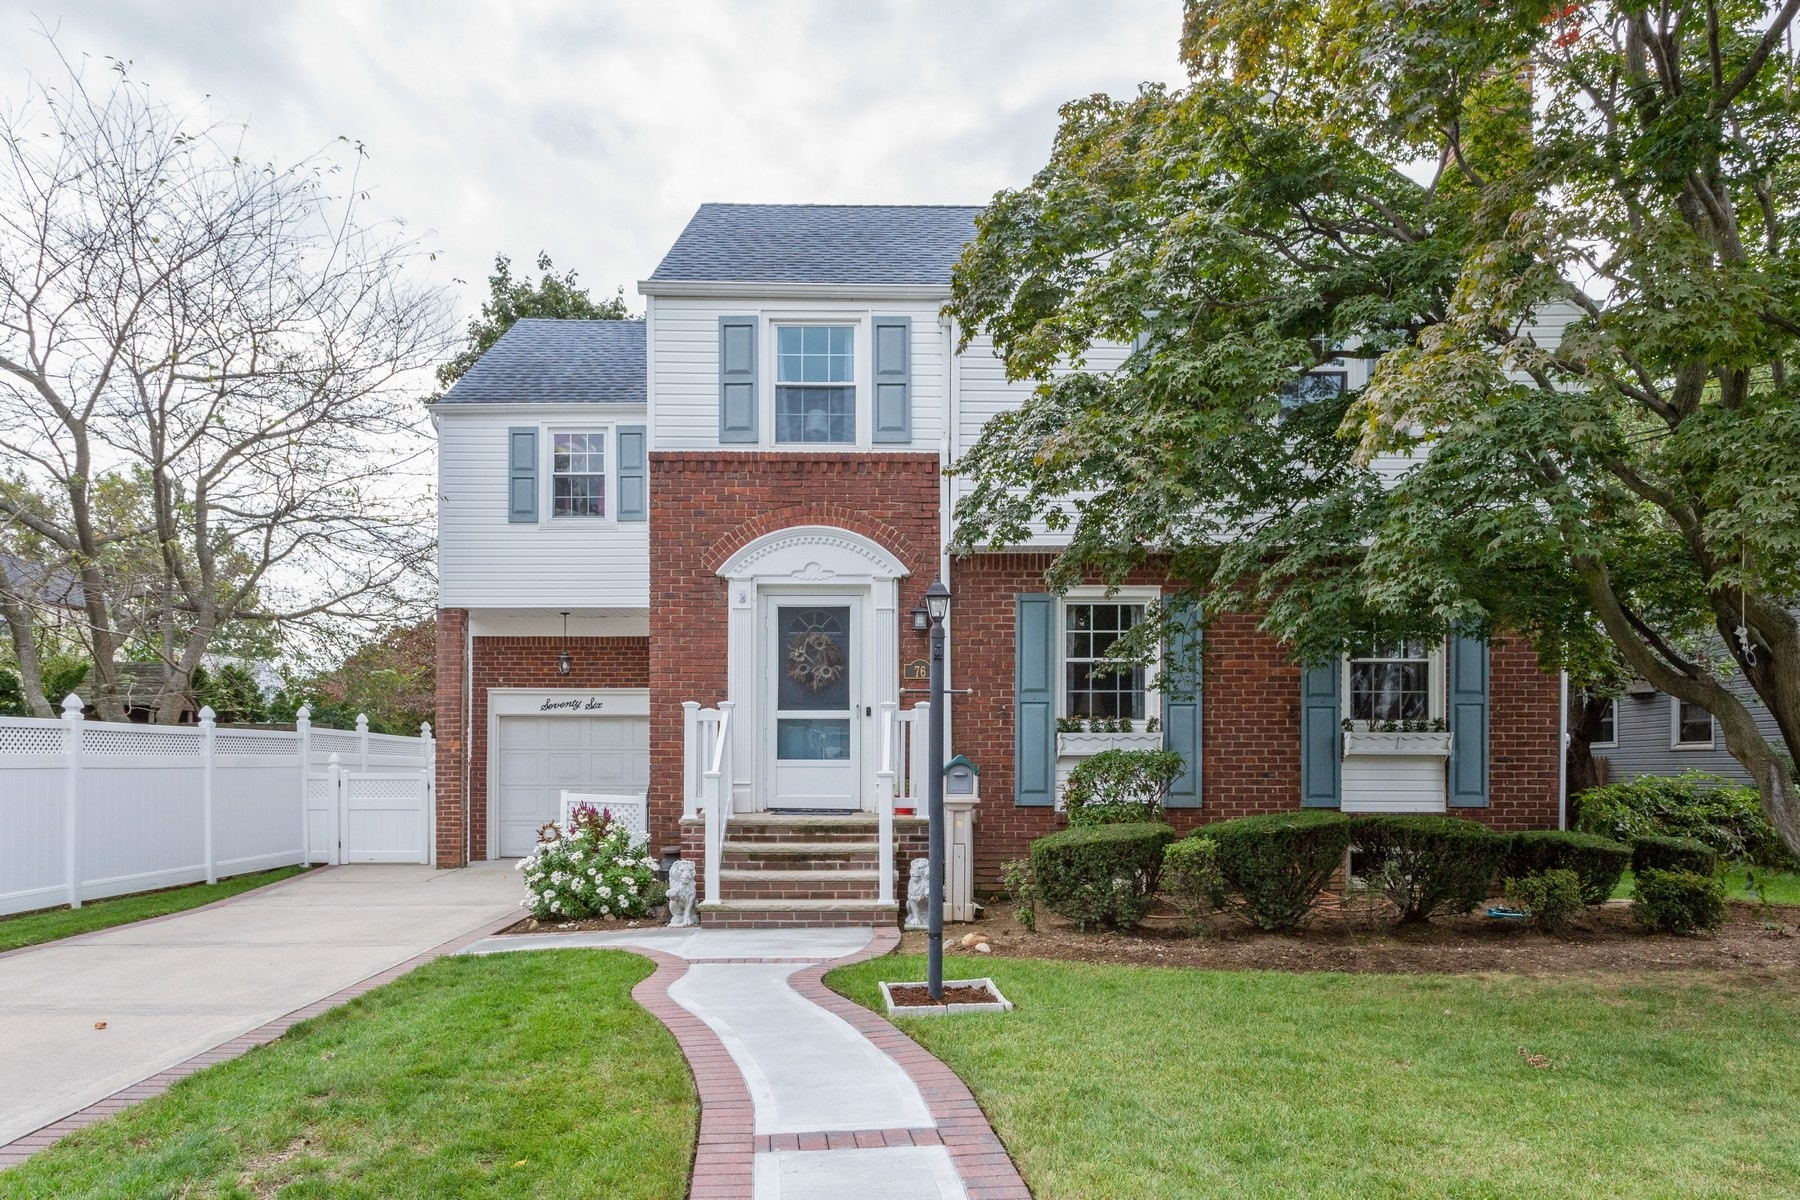 Single Family Homes for Sale at Lynbrook 76 Hart St Lynbrook, New York 11563 United States